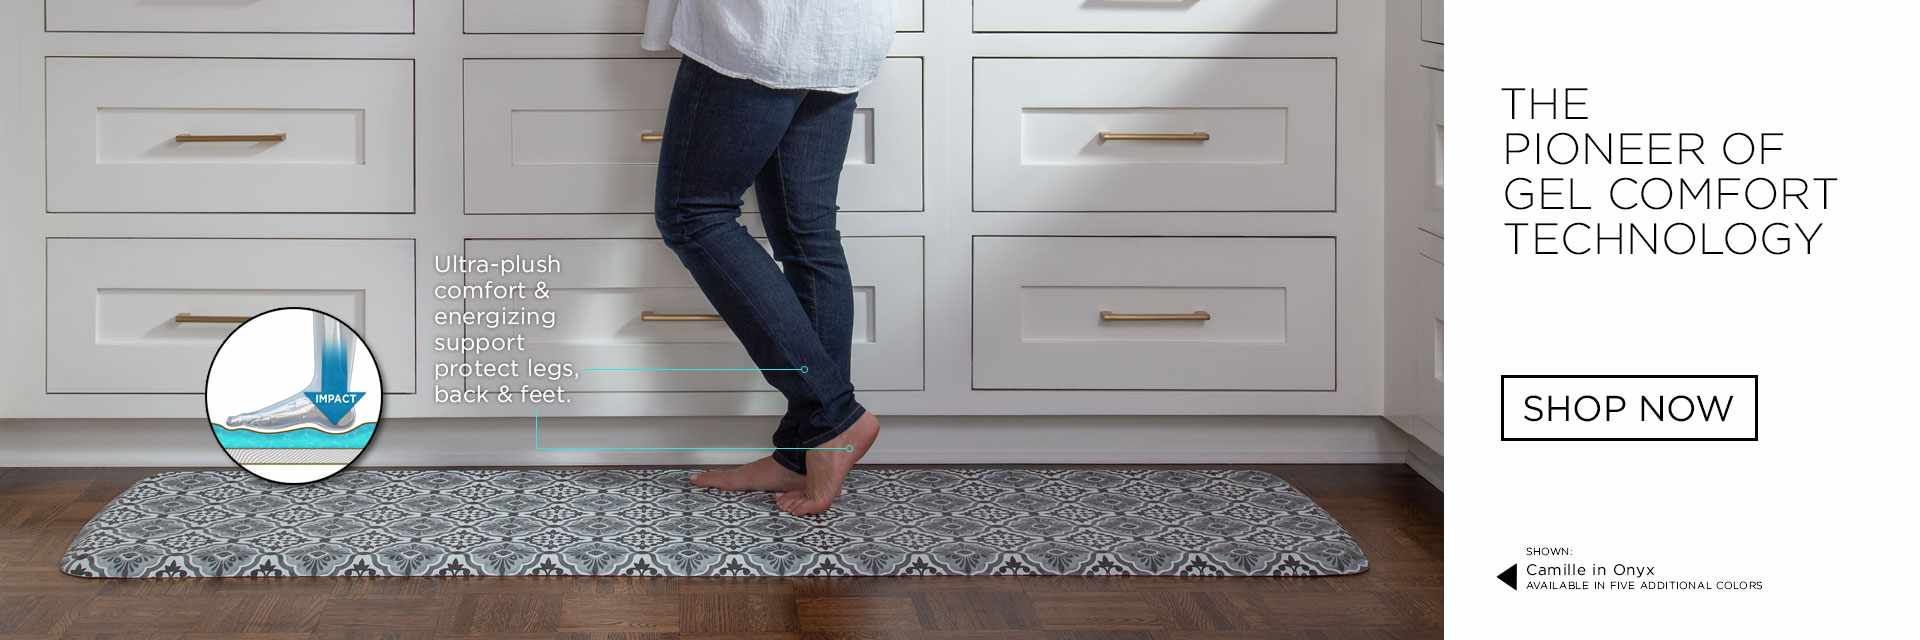 Kitchen Floor Mats For Comfort. The Ultimate Anti Fatigue ...